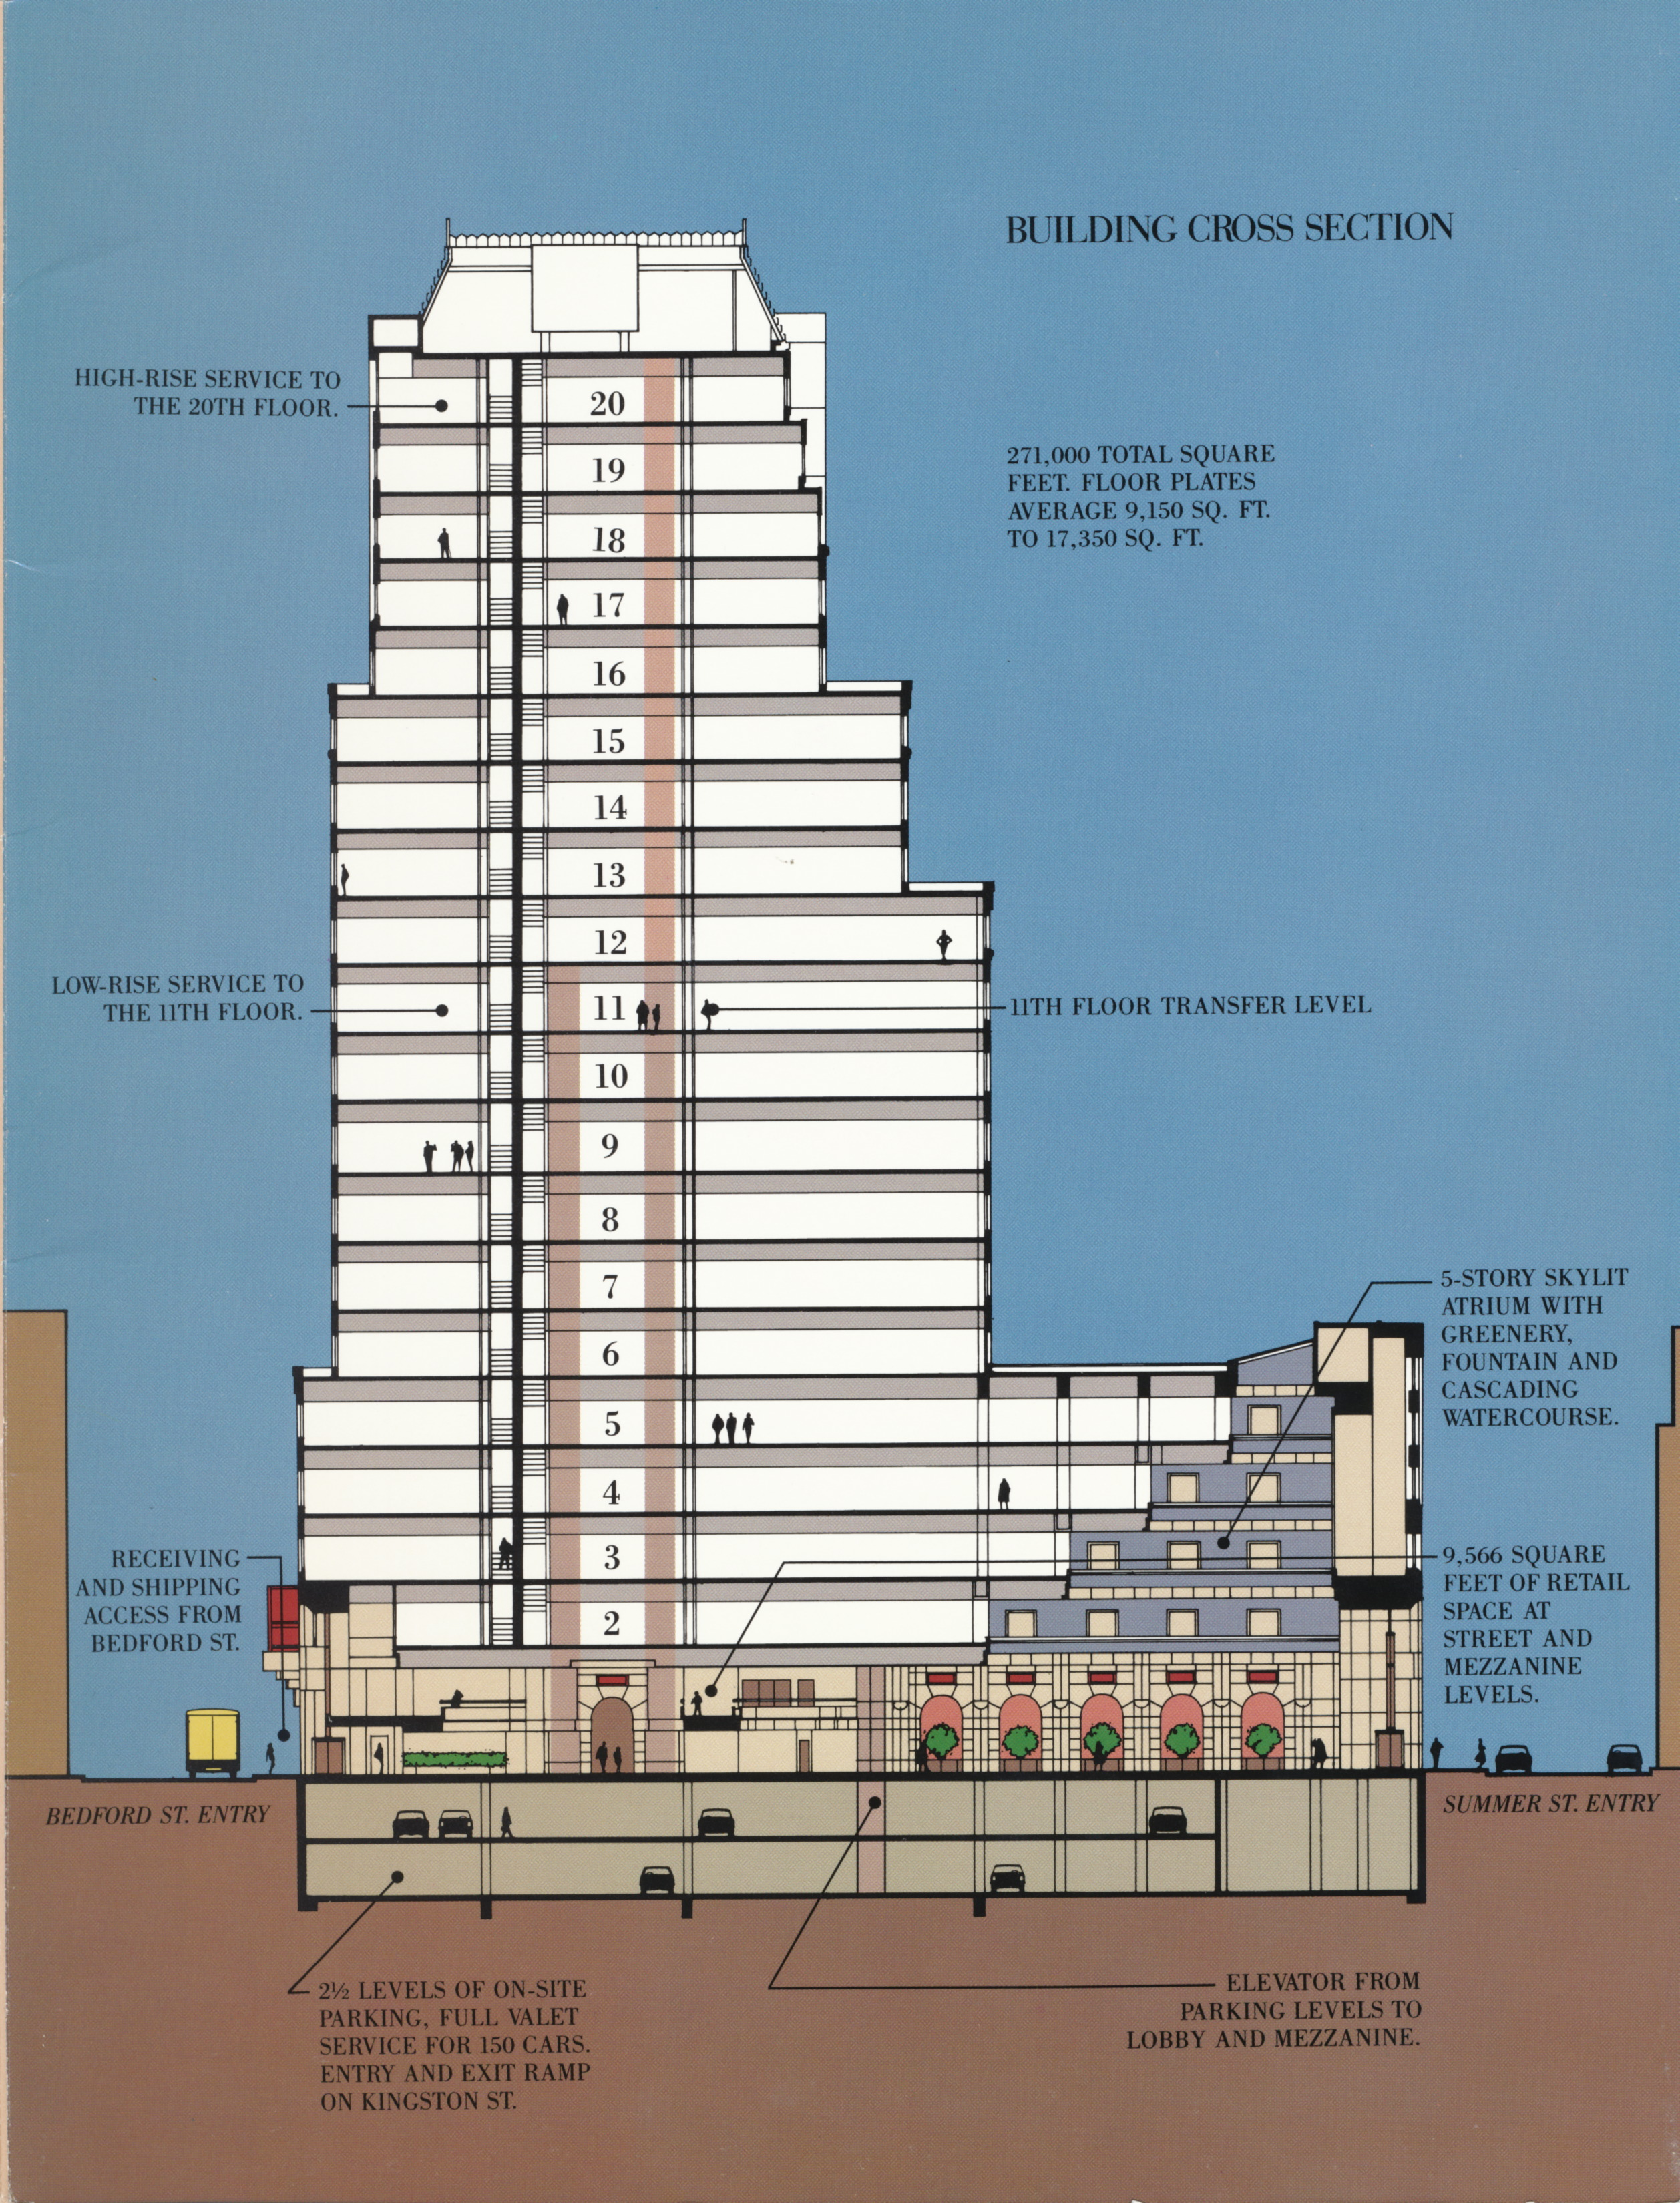 Cross section of the building, including the lower parking levels.